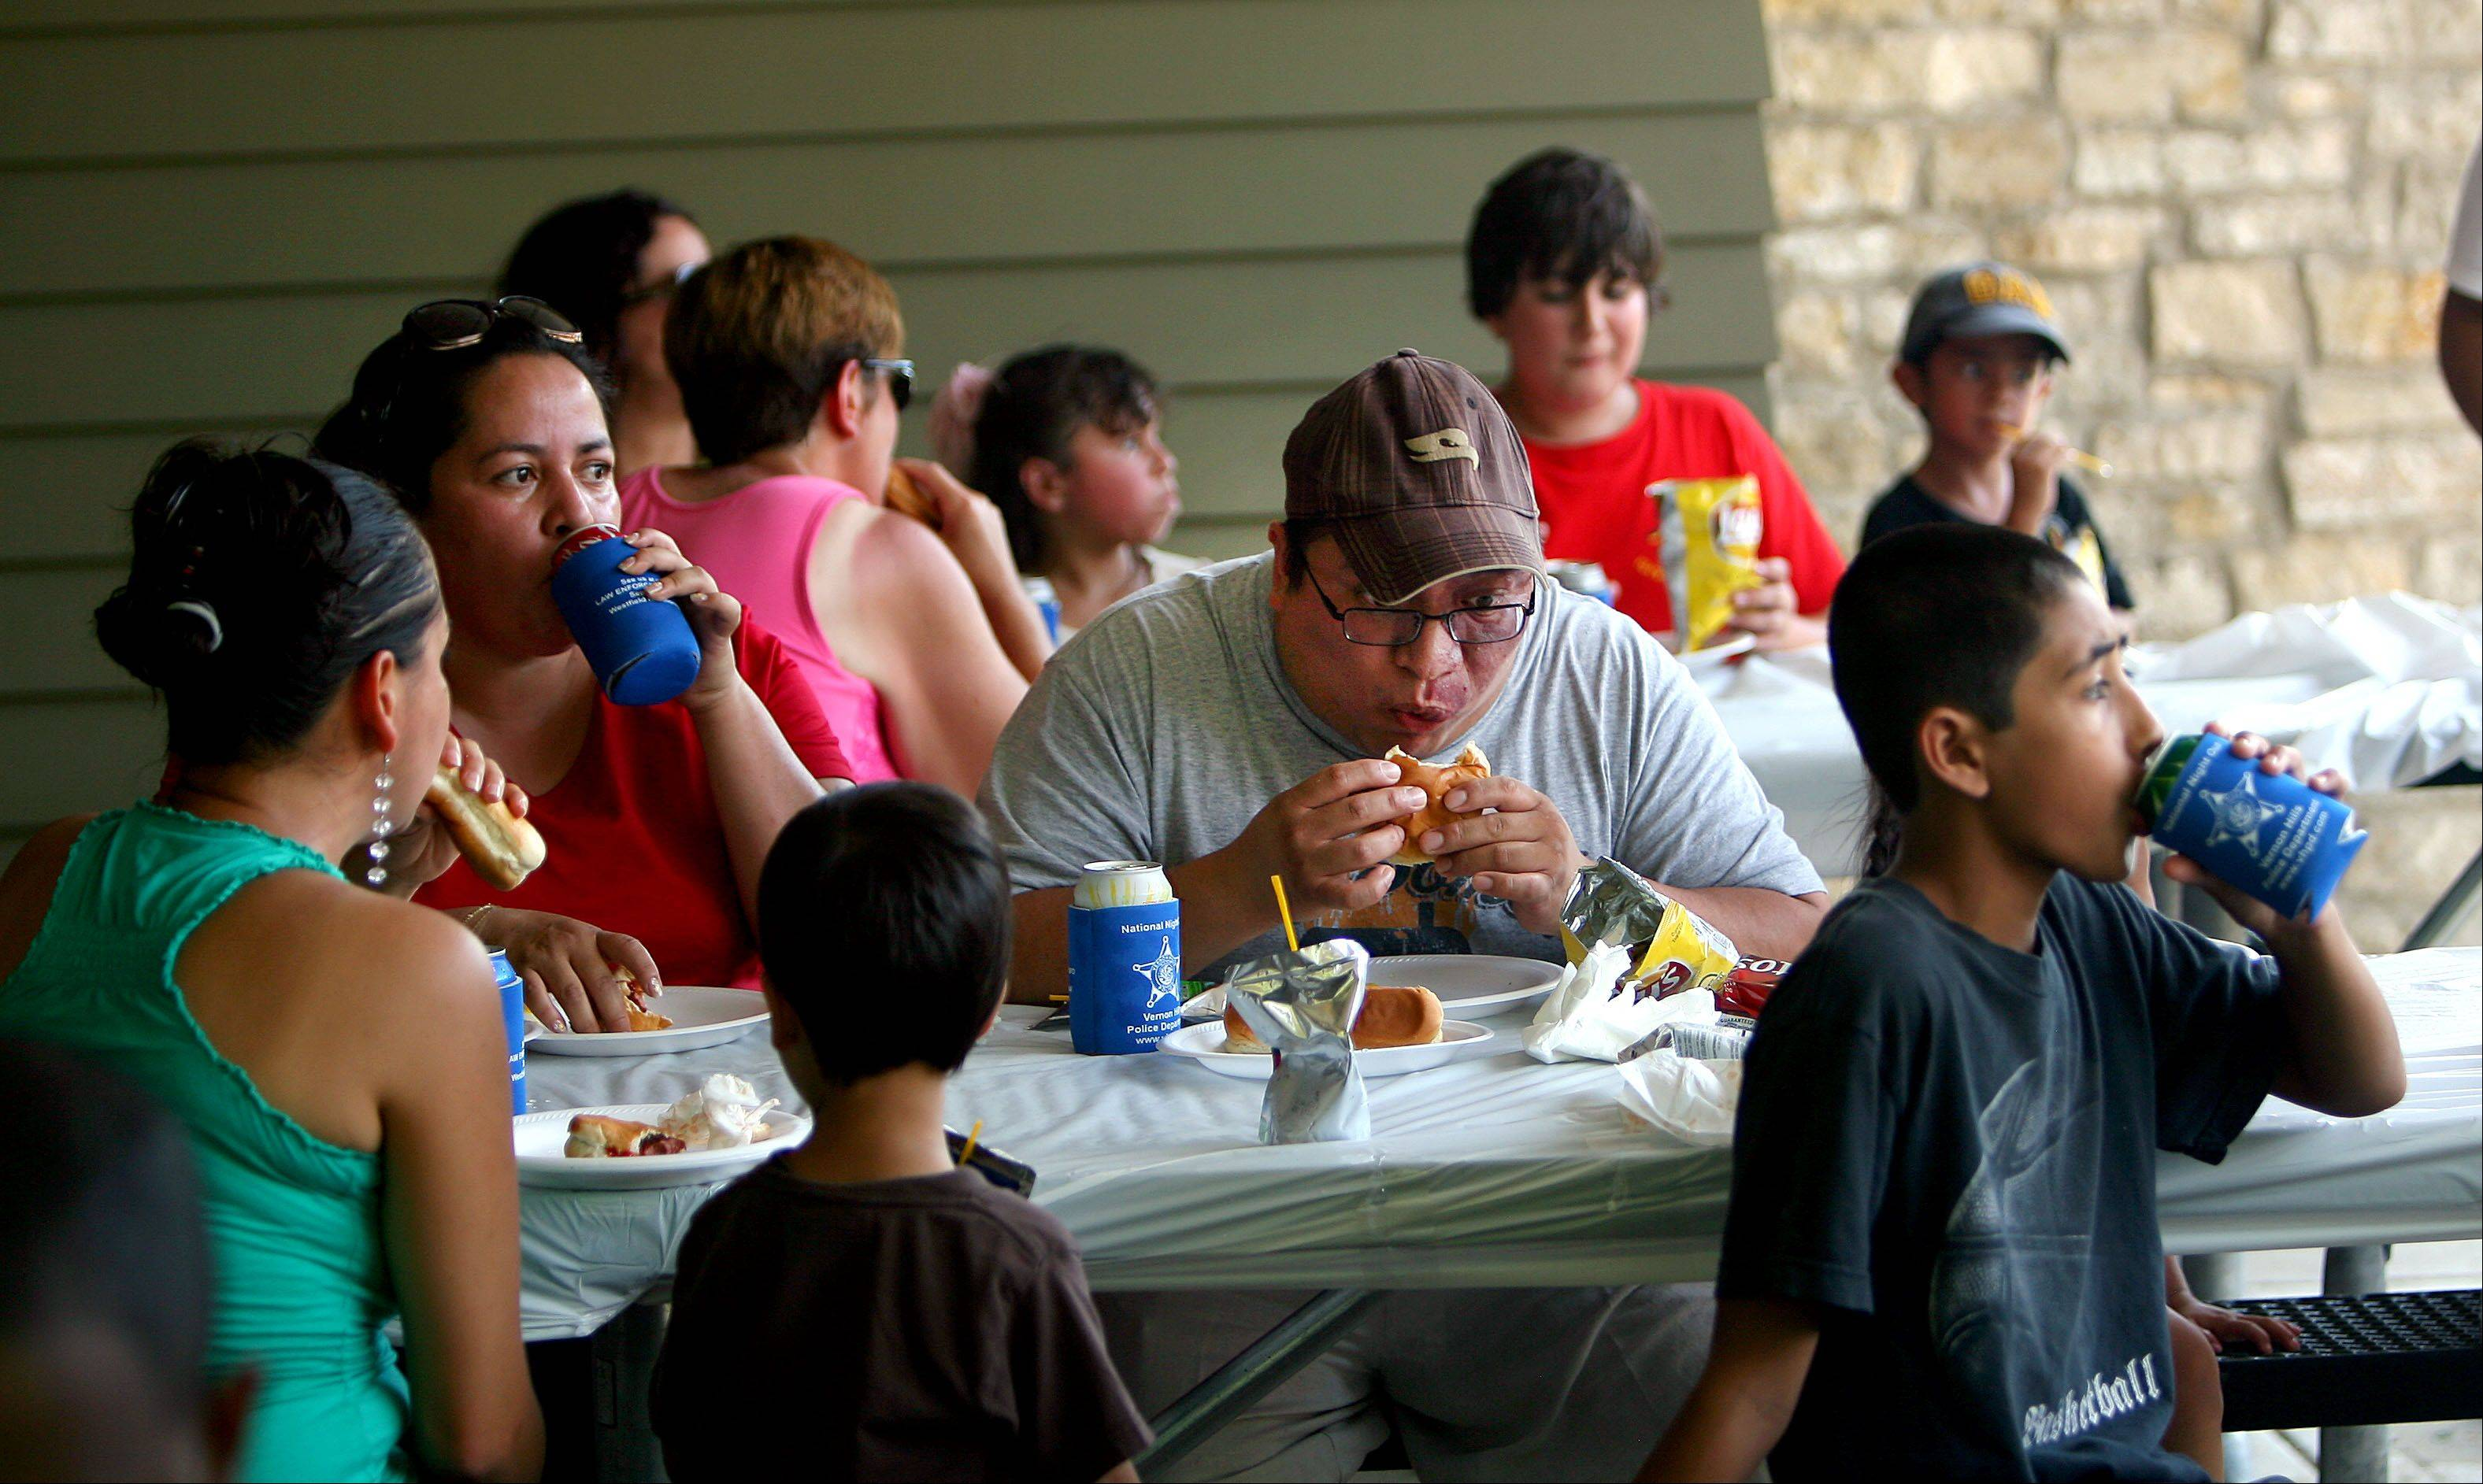 People enjoy some food courtesy of the Vernon Hills police department during it's National Night Out event at Century Park North in Vernon Hills.